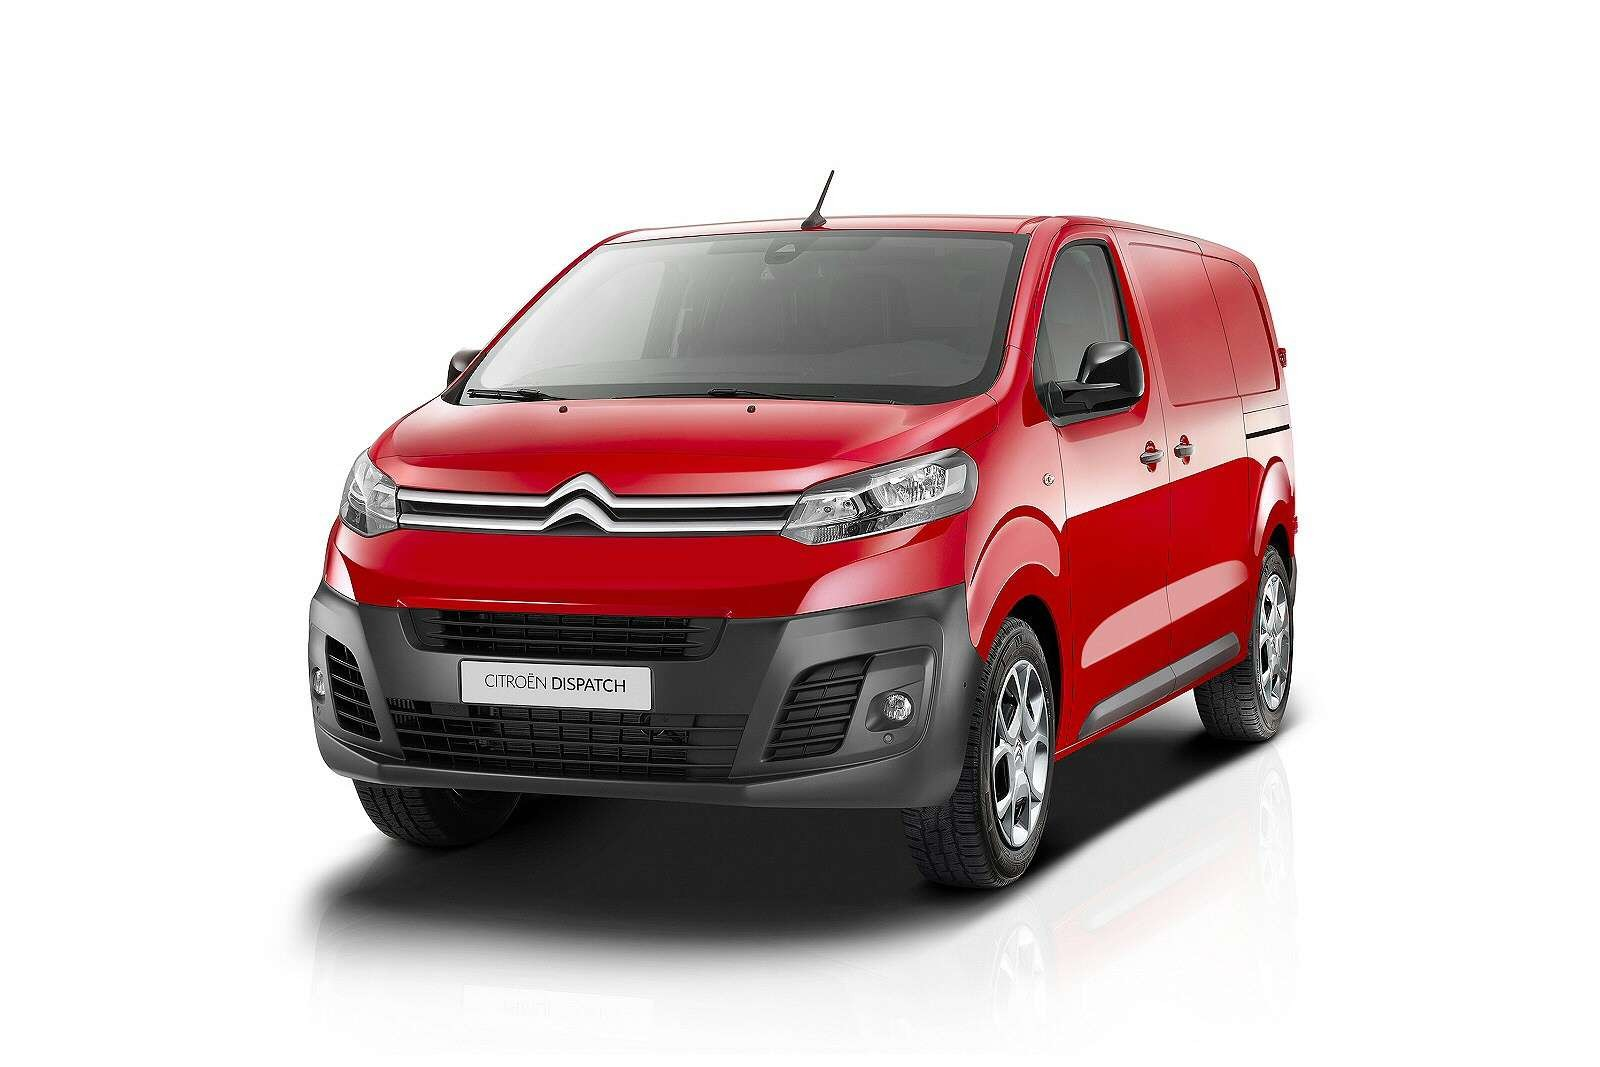 Business Lease Car Deals Affordable Citroen Van Lease Deals And Offers Pink Car